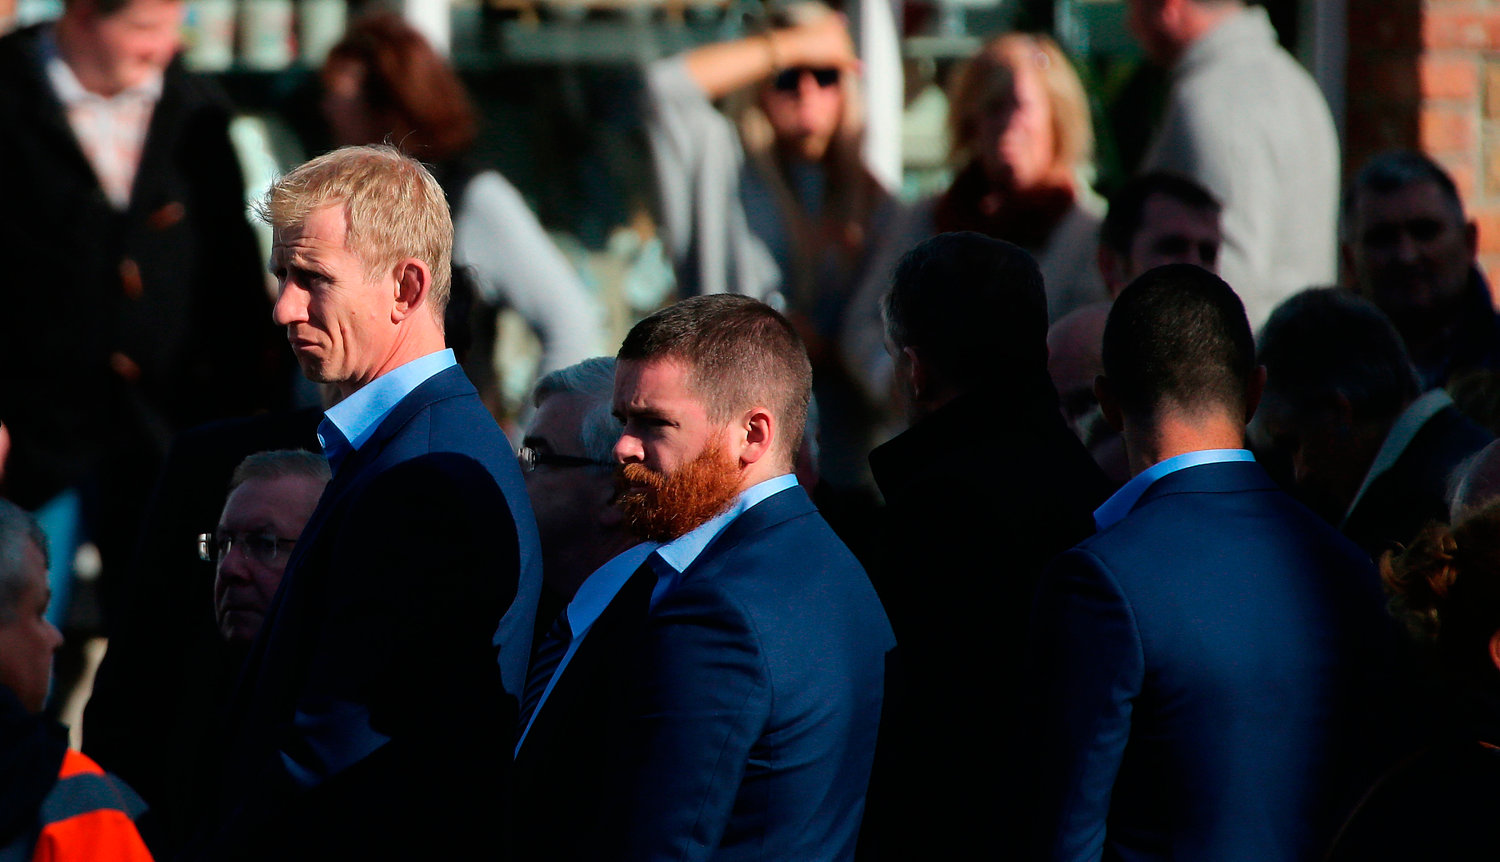 Leinster Head Coach Leo Cullen (left) as the coffin of Munster Rugby head coach Anthony Foley is brought to repose in St. Flannan's Church, Killaloe in Co Clare, ahead off his funeral tomorrow. PRESS ASSOCIATION Photo. Picture date: Thursday October 20, 2016. See PA story DEATH Foley. Photo credit should read: Niall Carson/PA Wire